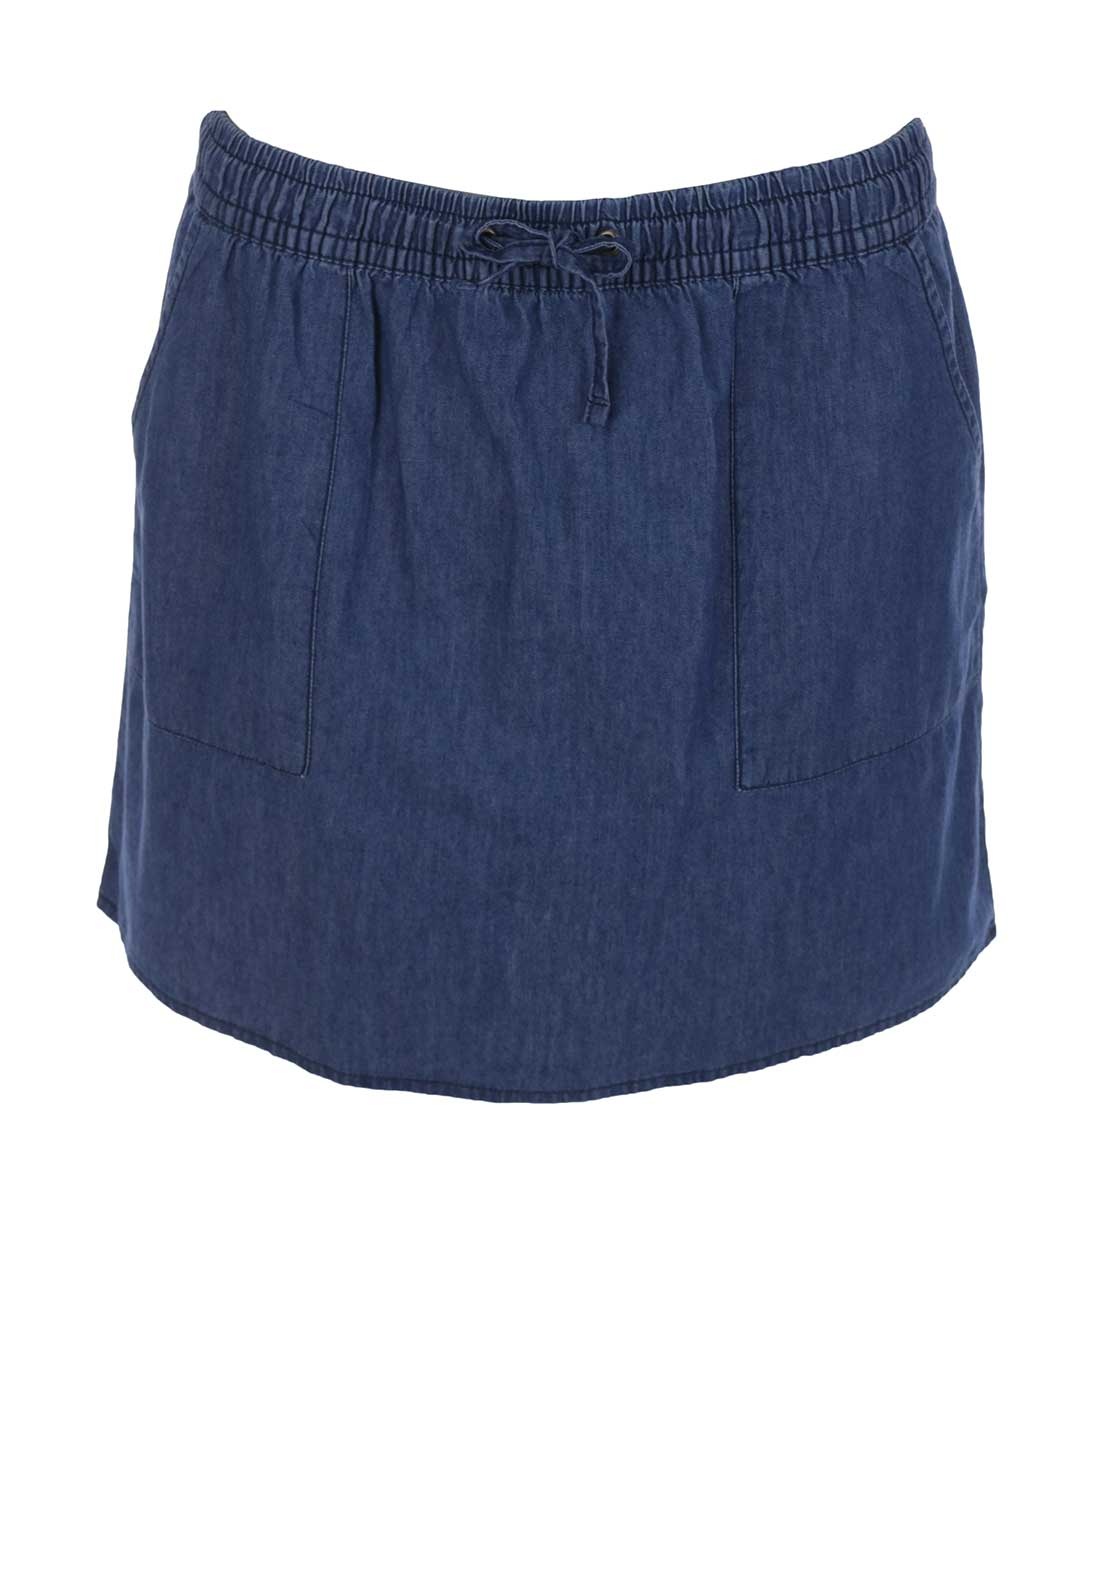 Vero Moda Shorty Chambray Mini Skirt, Medium Blue Denim